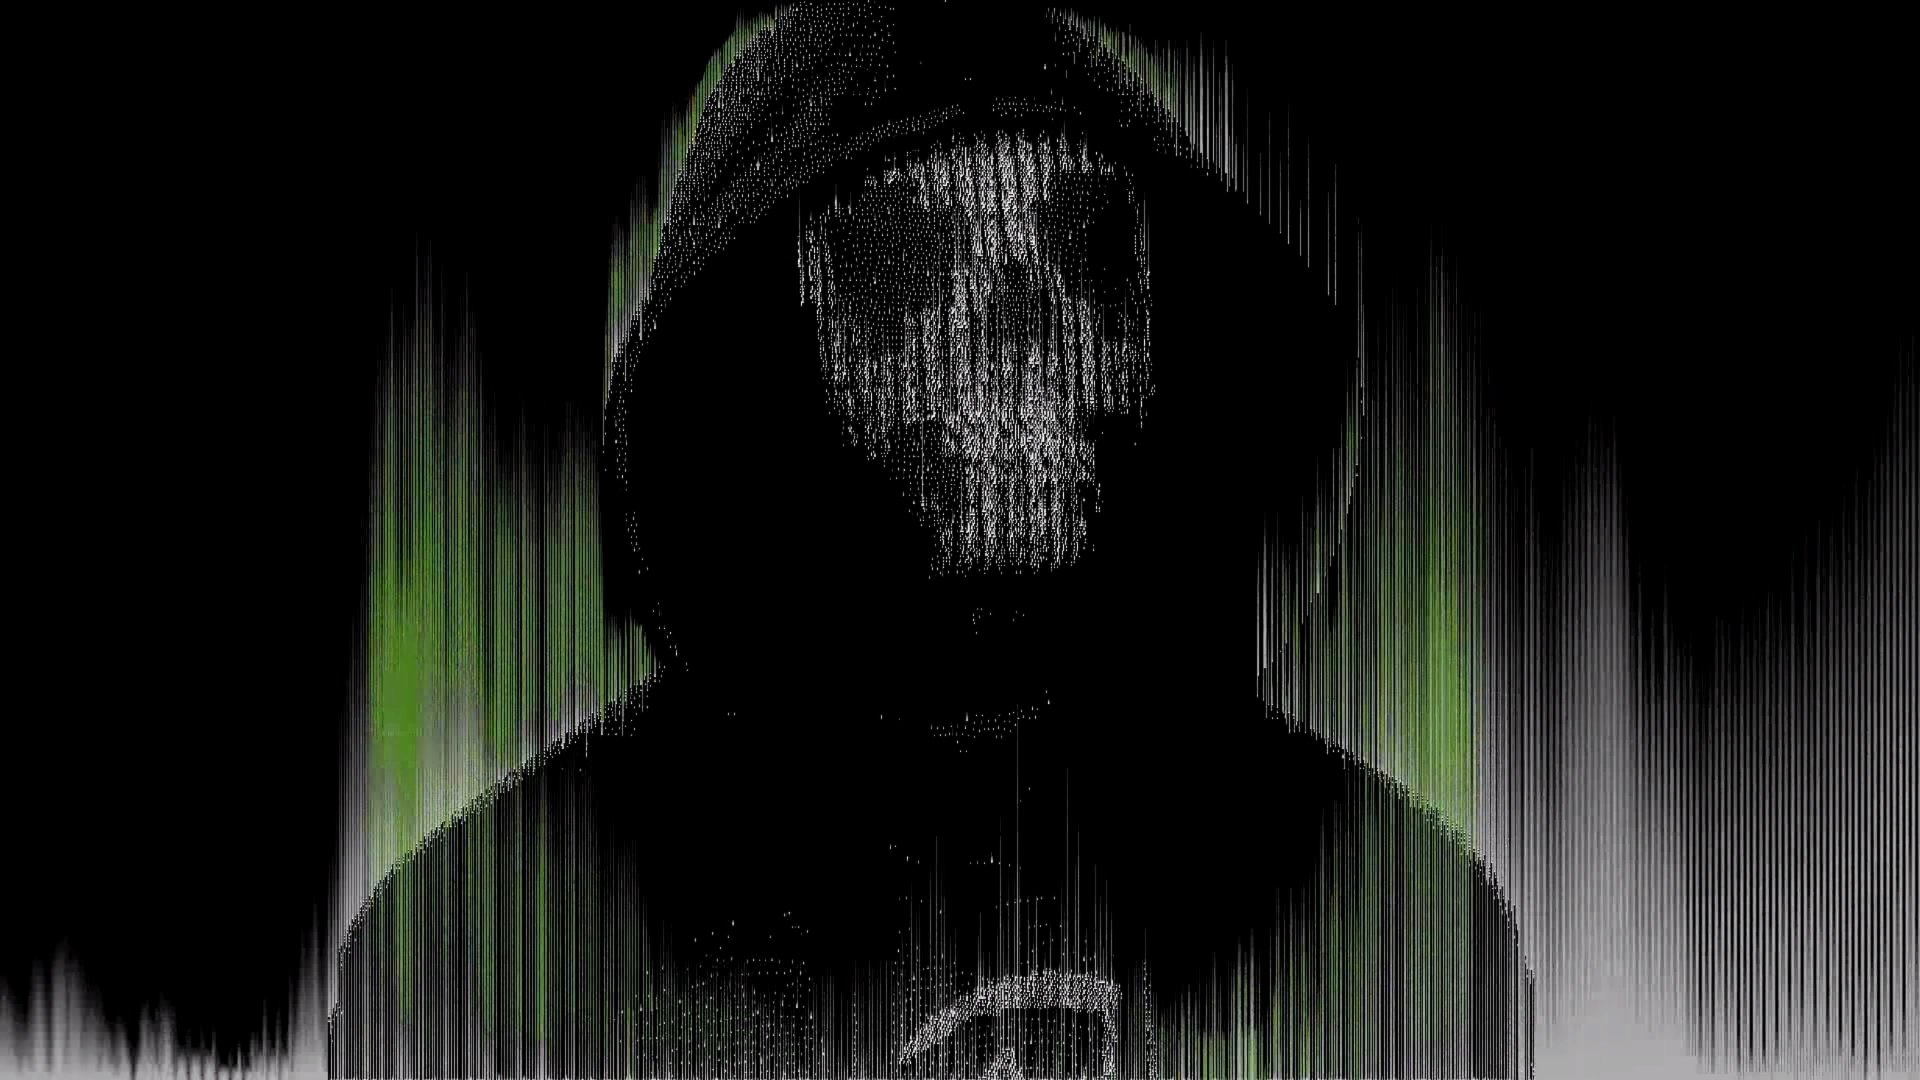 Video Game - Watch Dogs 2  DedSec (Watch Dogs) Wallpaper